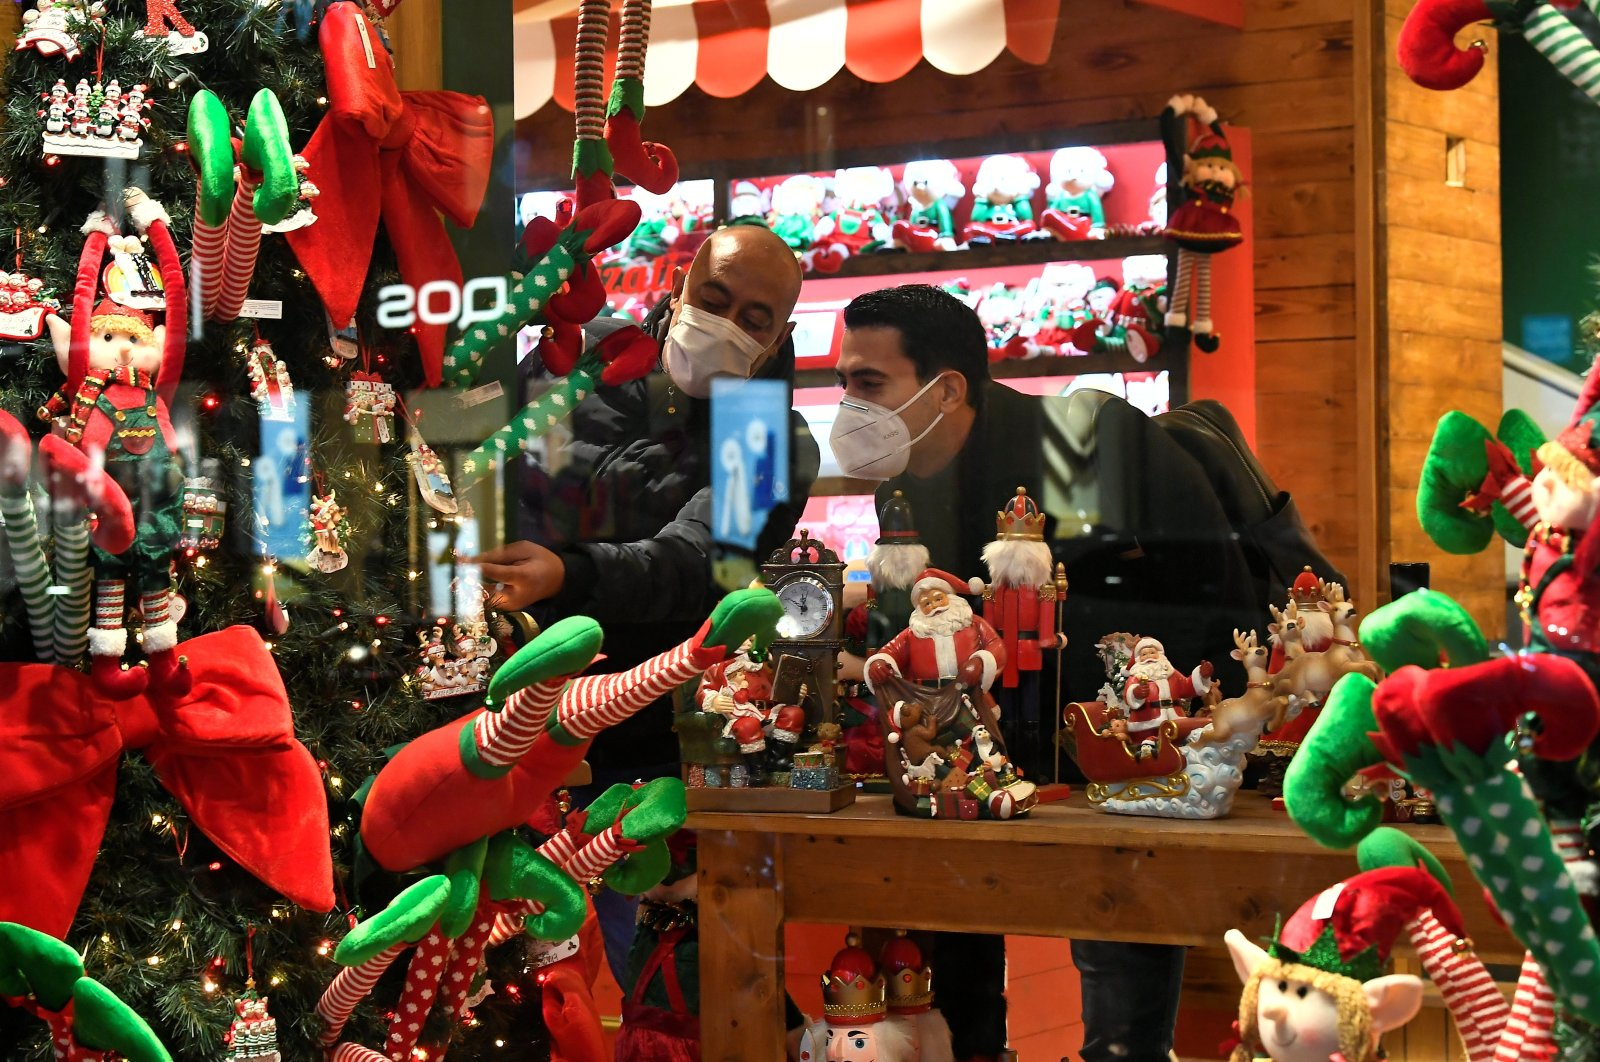 People go shopping after nonessential shops reopen ahead of Christmas, in Milan, Italy, Dec. 1, 2020. (REUTERS Photo)